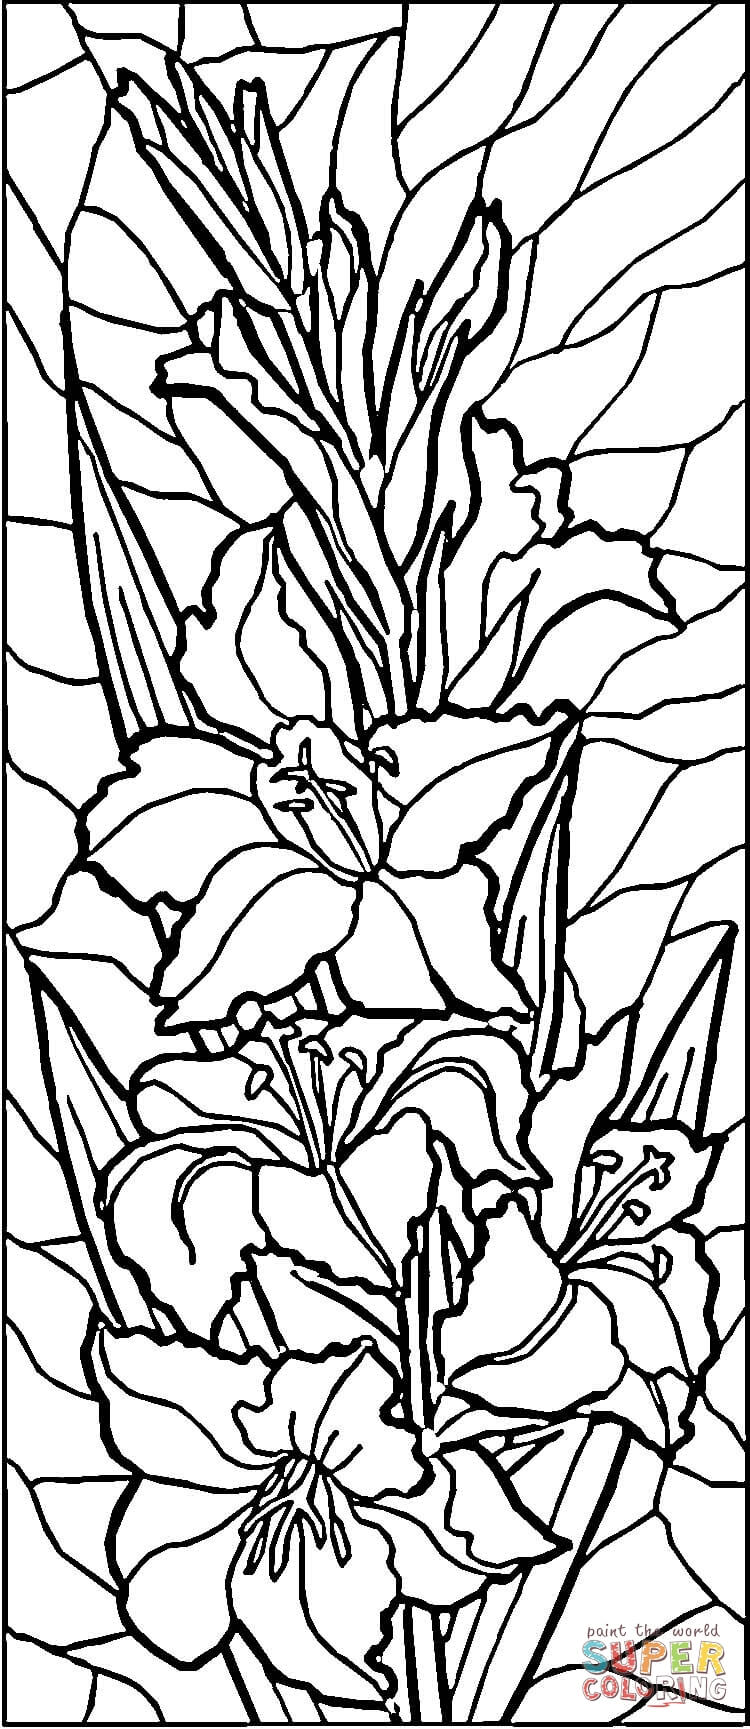 stained glass coloring page elementary school enrichment activities stained glass glass page stained coloring